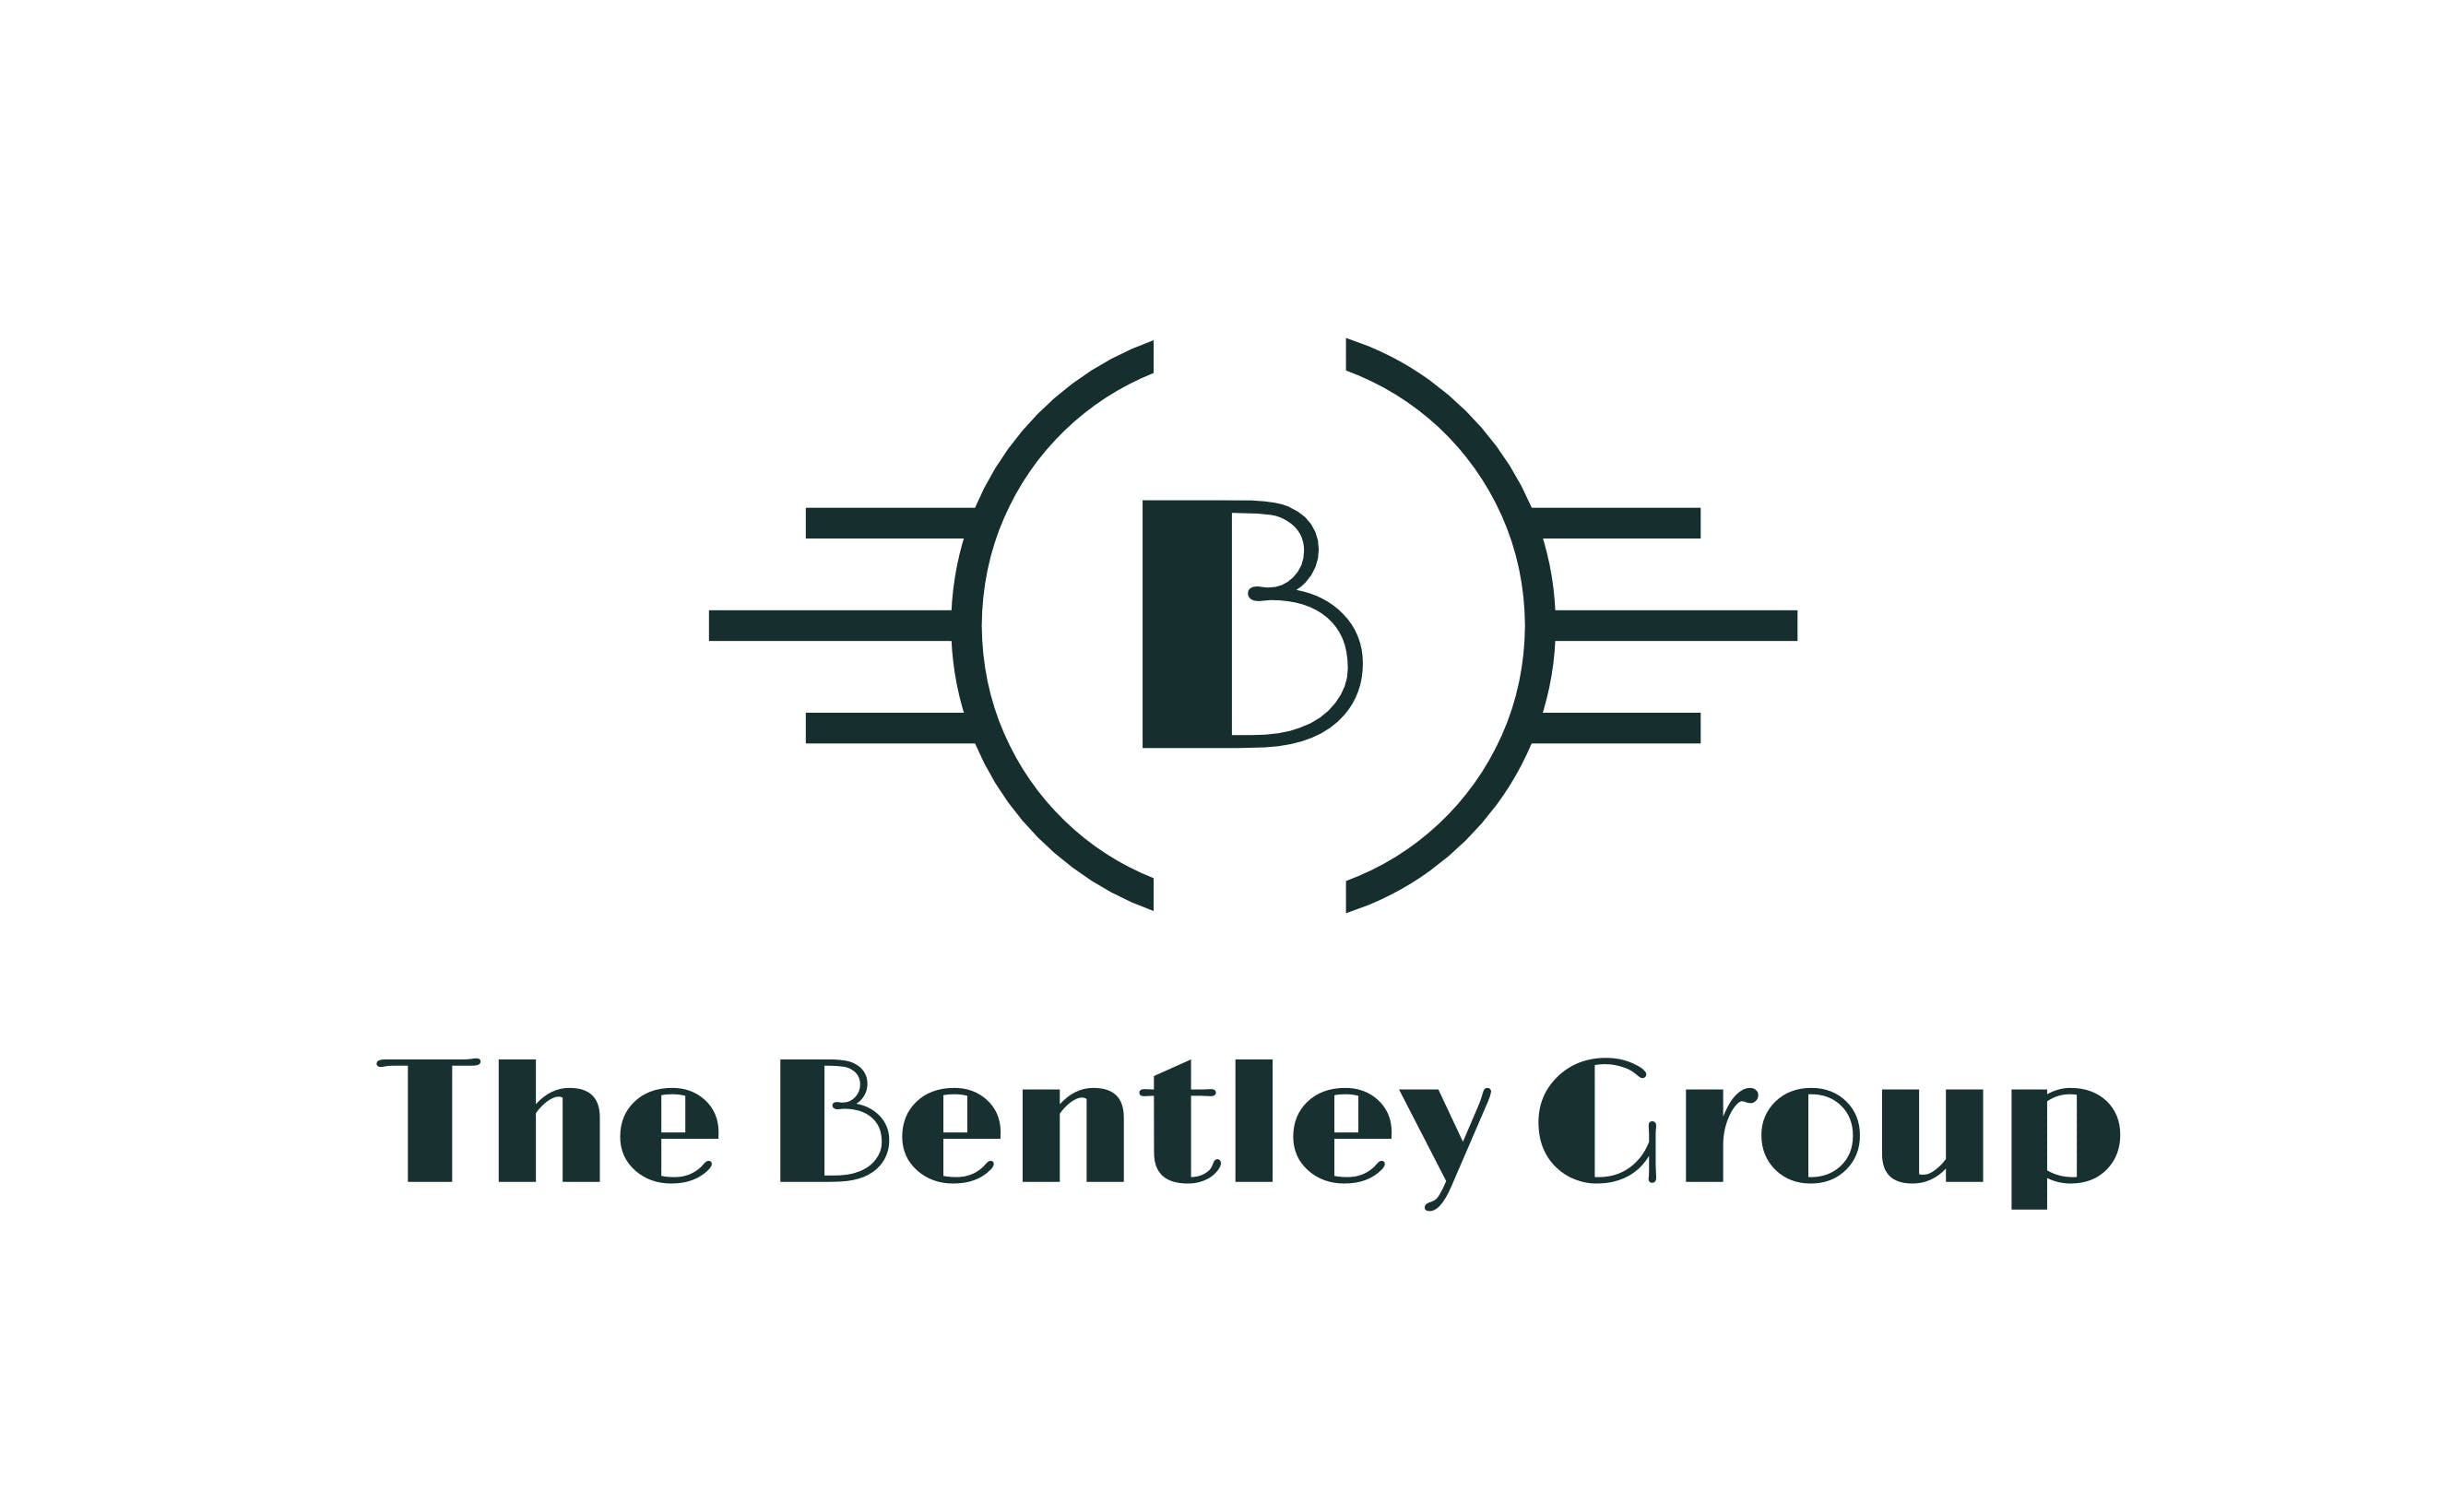 The Bentley Group